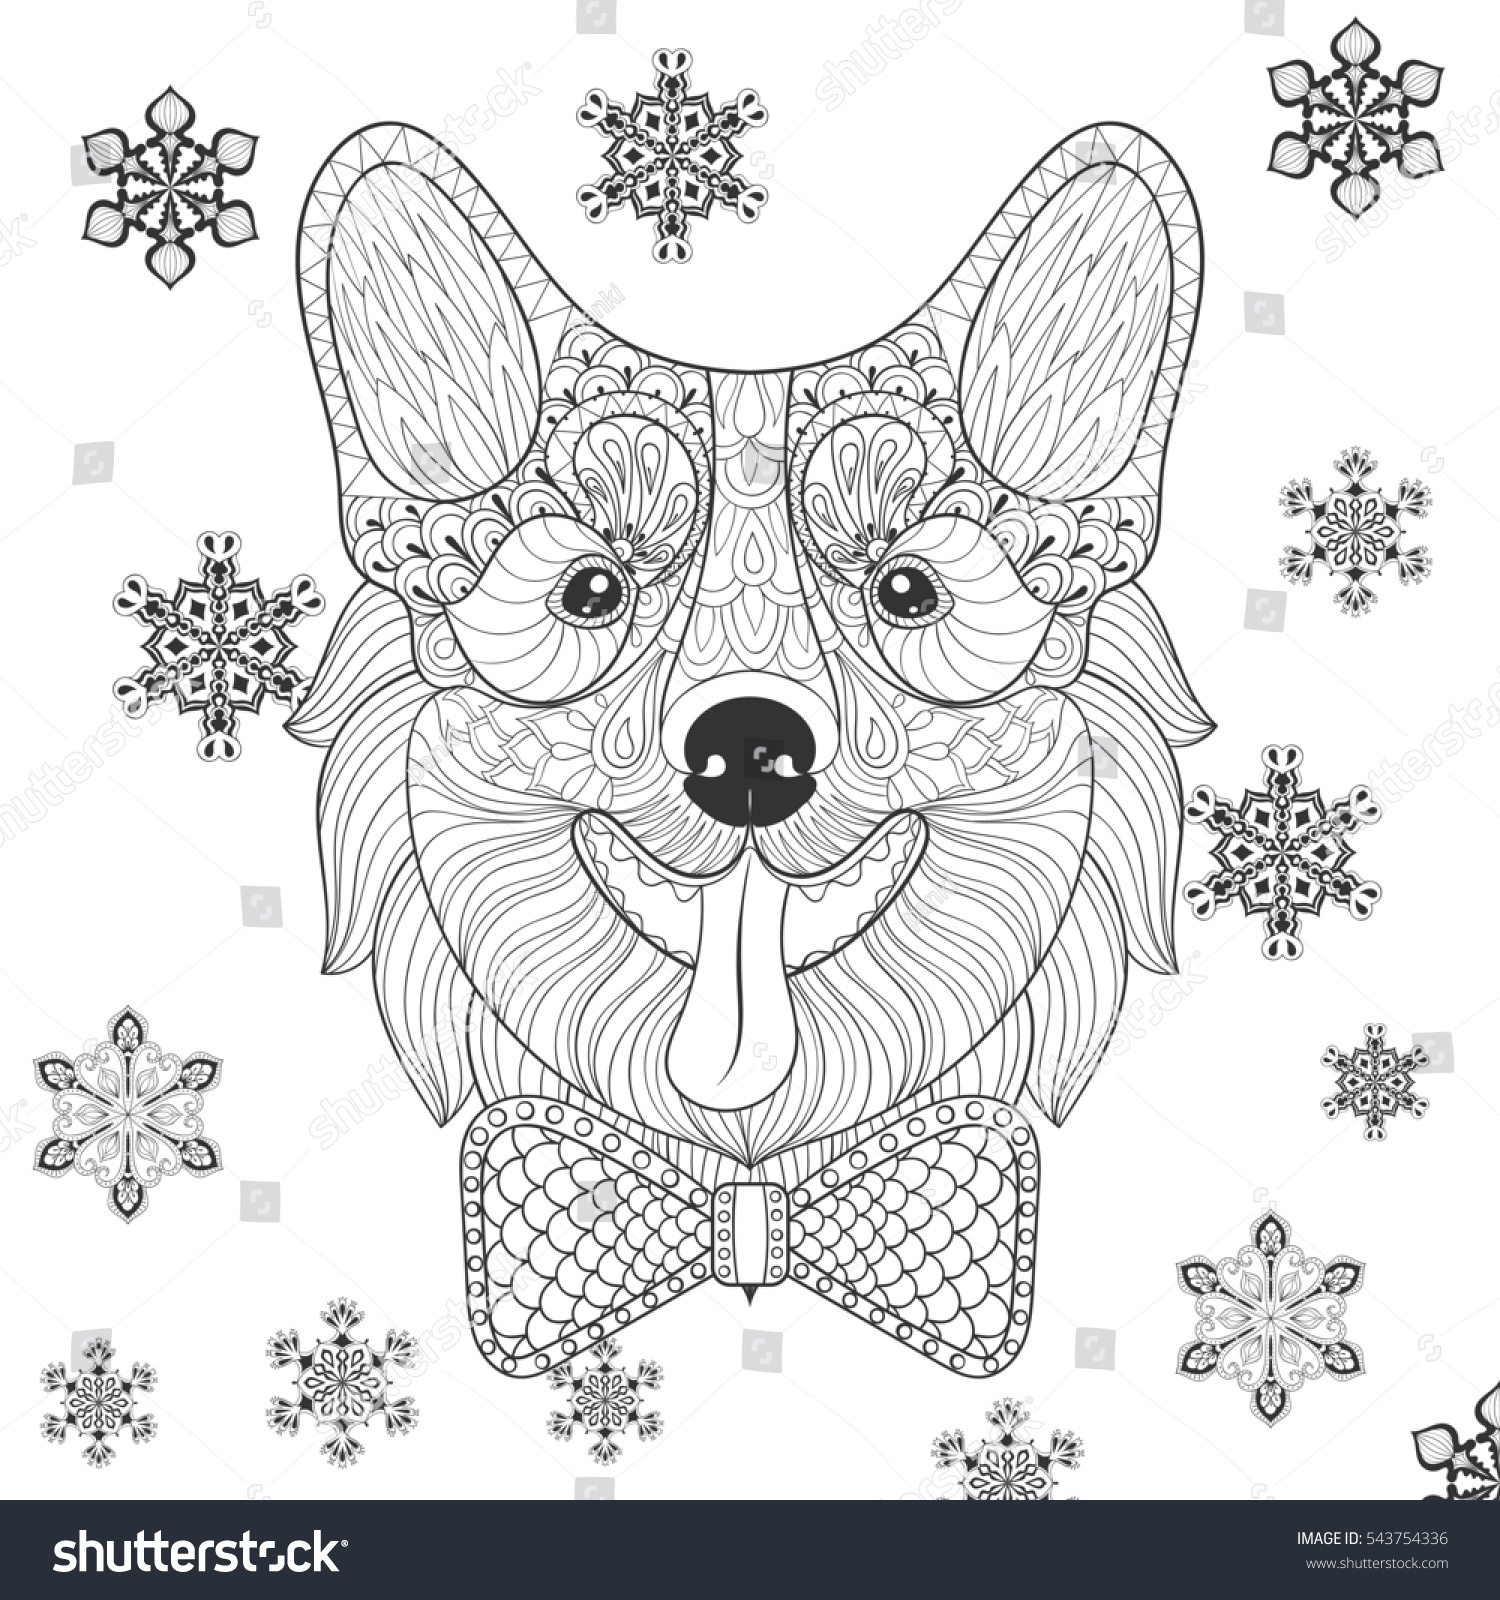 Zentangle Welsh Corgi With Bow Tie In Monochrome Doodle Style Hand